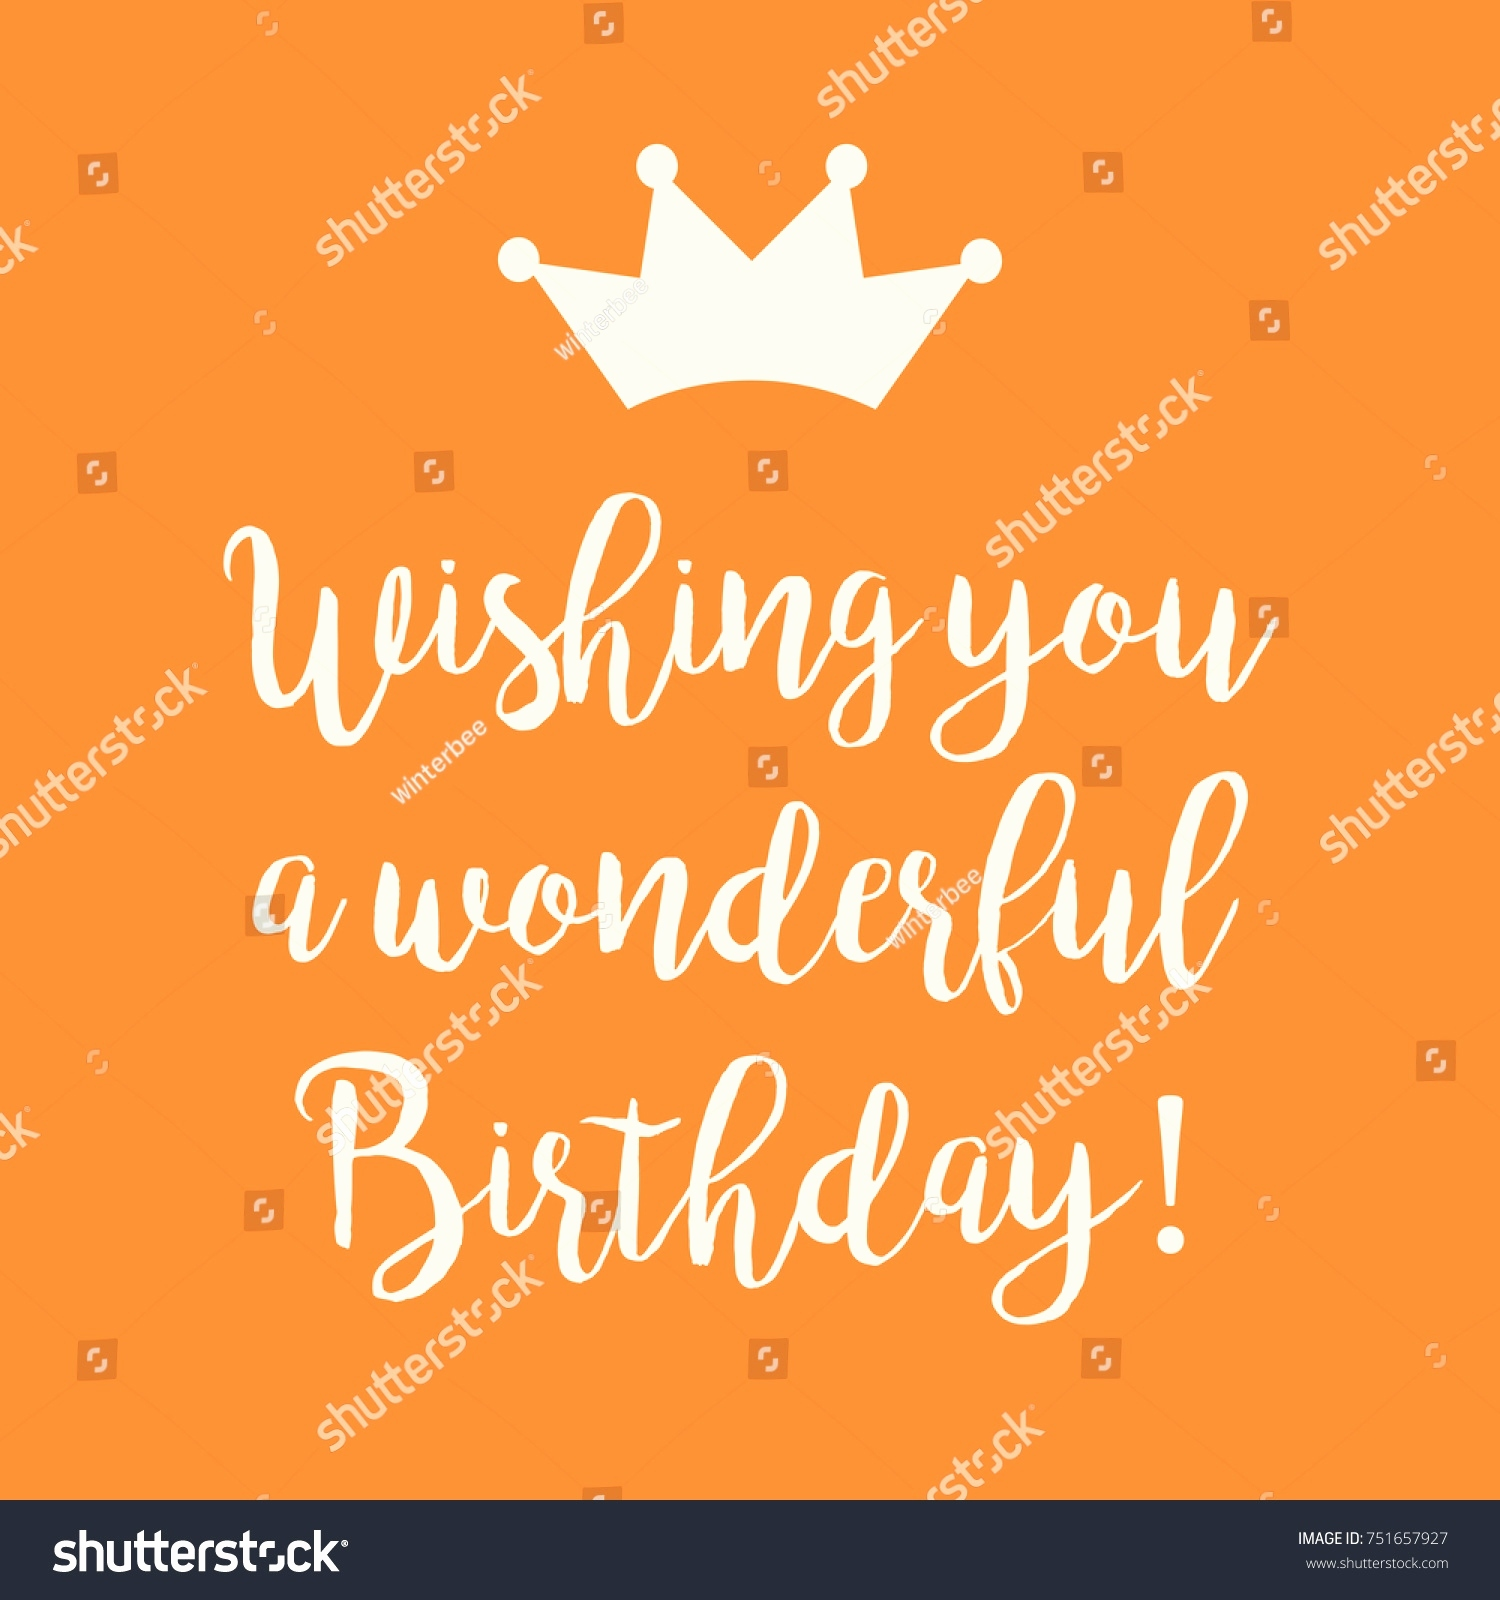 text message birthday cards free ; text-message-birthday-cards-free-luxury-free-text-message-birthday-cards-luxury-happy-birthday-sms-of-text-message-birthday-cards-free